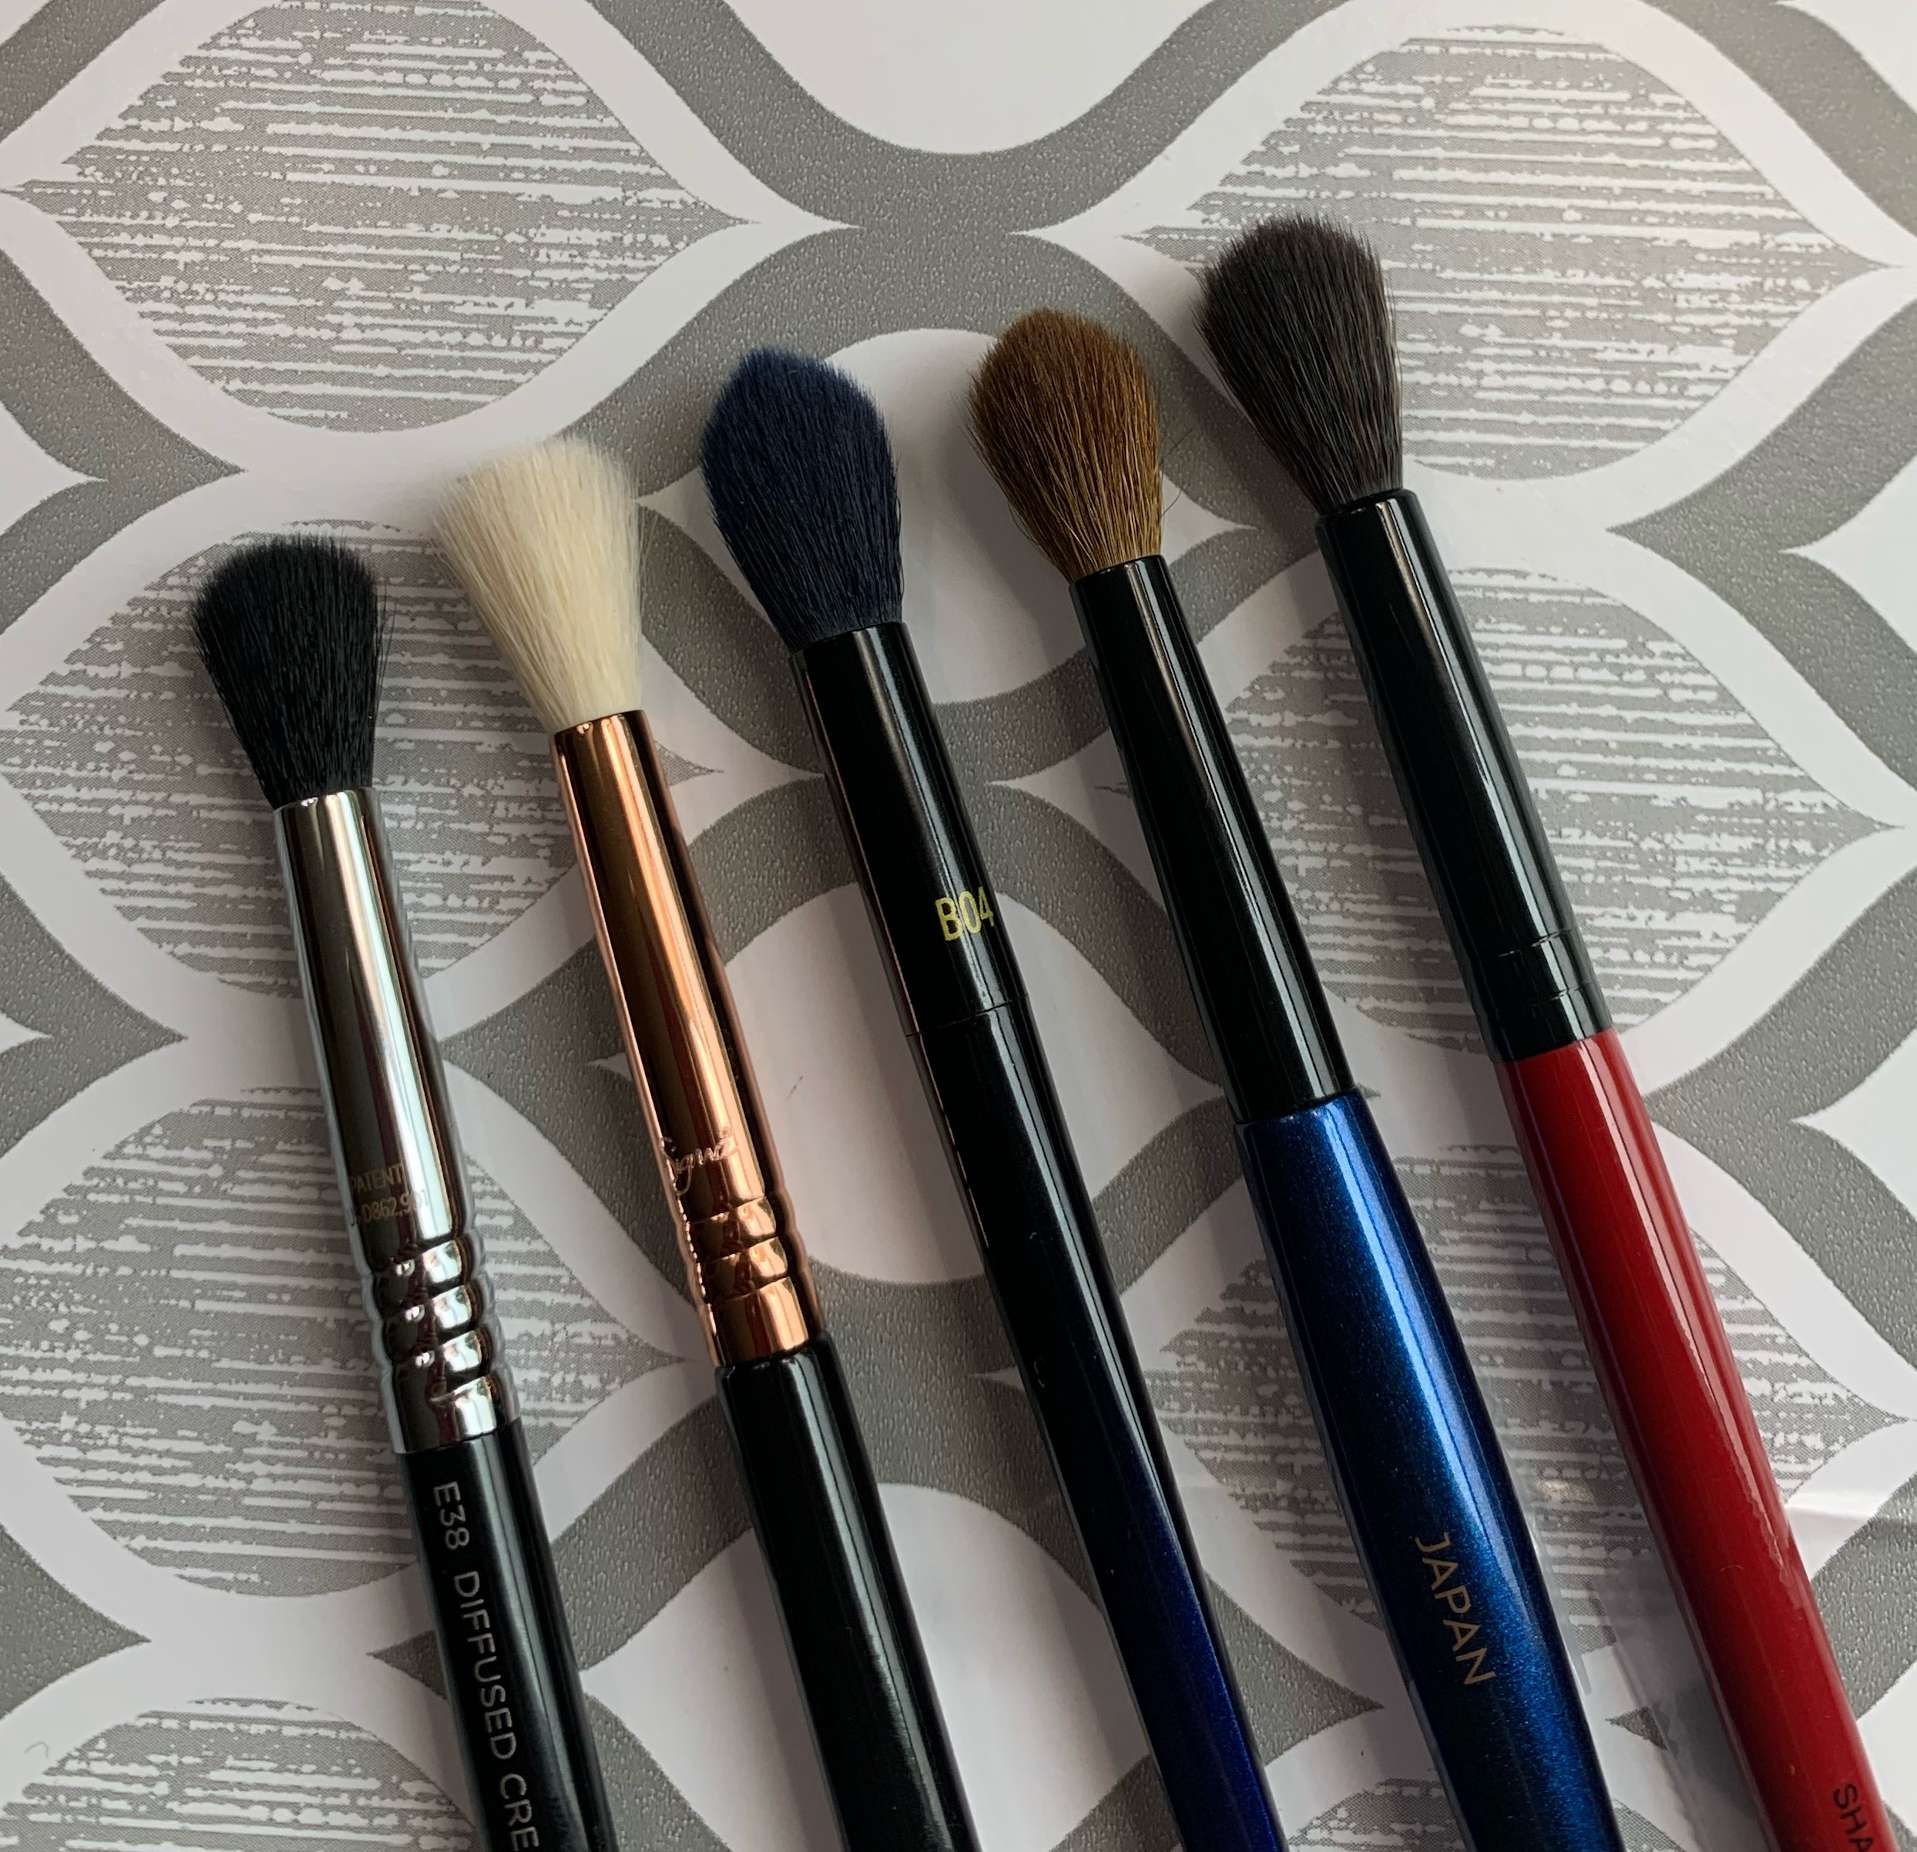 Brushes L to R: Sigma E38 diffused crease, Sigma E35 tapered blending, Real Techniques B04, Sonia G classic crease, Smashbox shadow (eye blending brush comparisons)